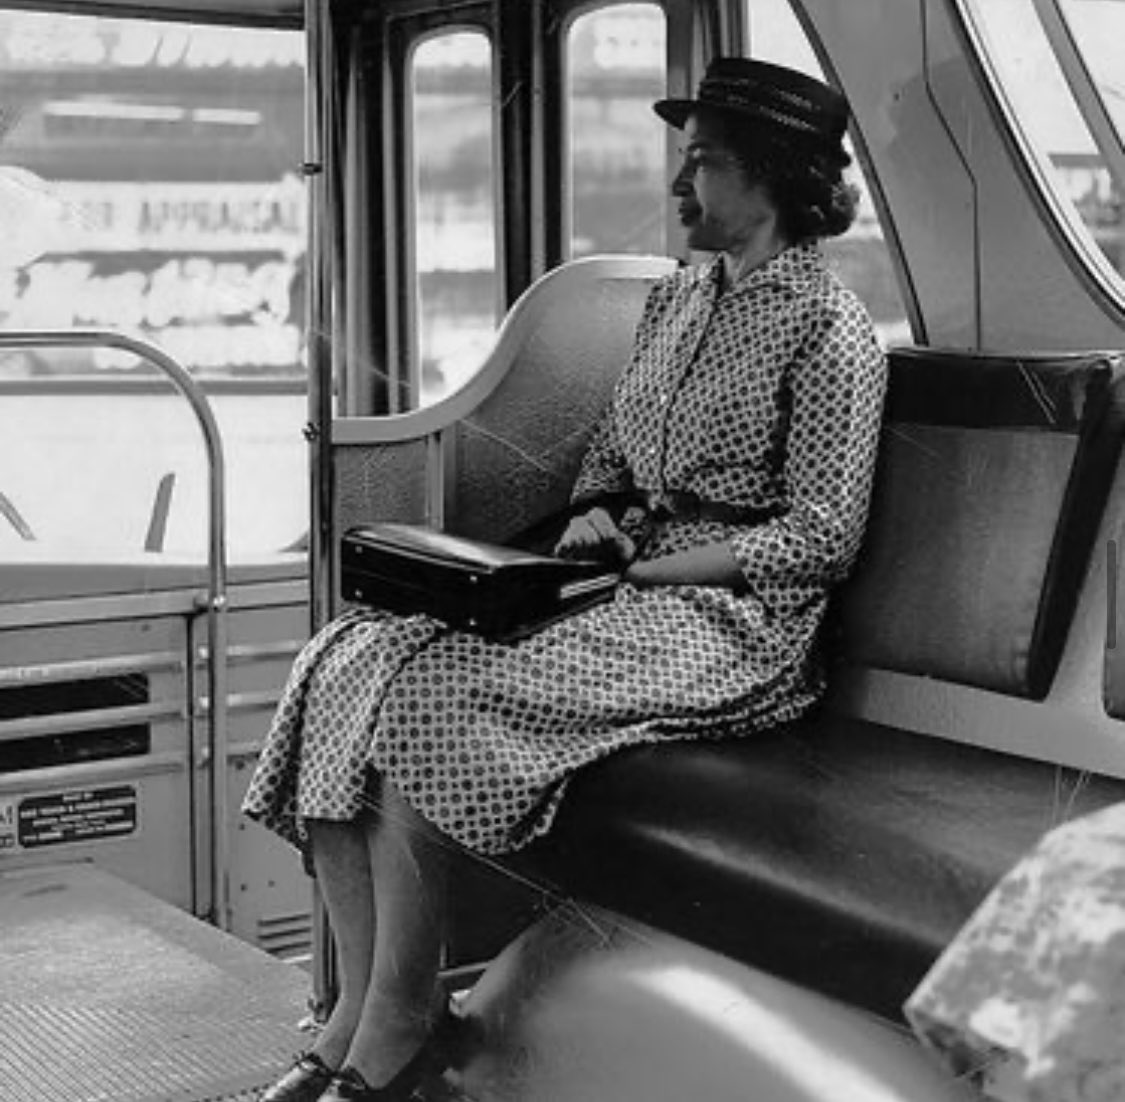 Happy Birthday to a pioneer of women's rights and equality, Miss Rosa Parks. Here she is elegantly poised and on a mission for change...